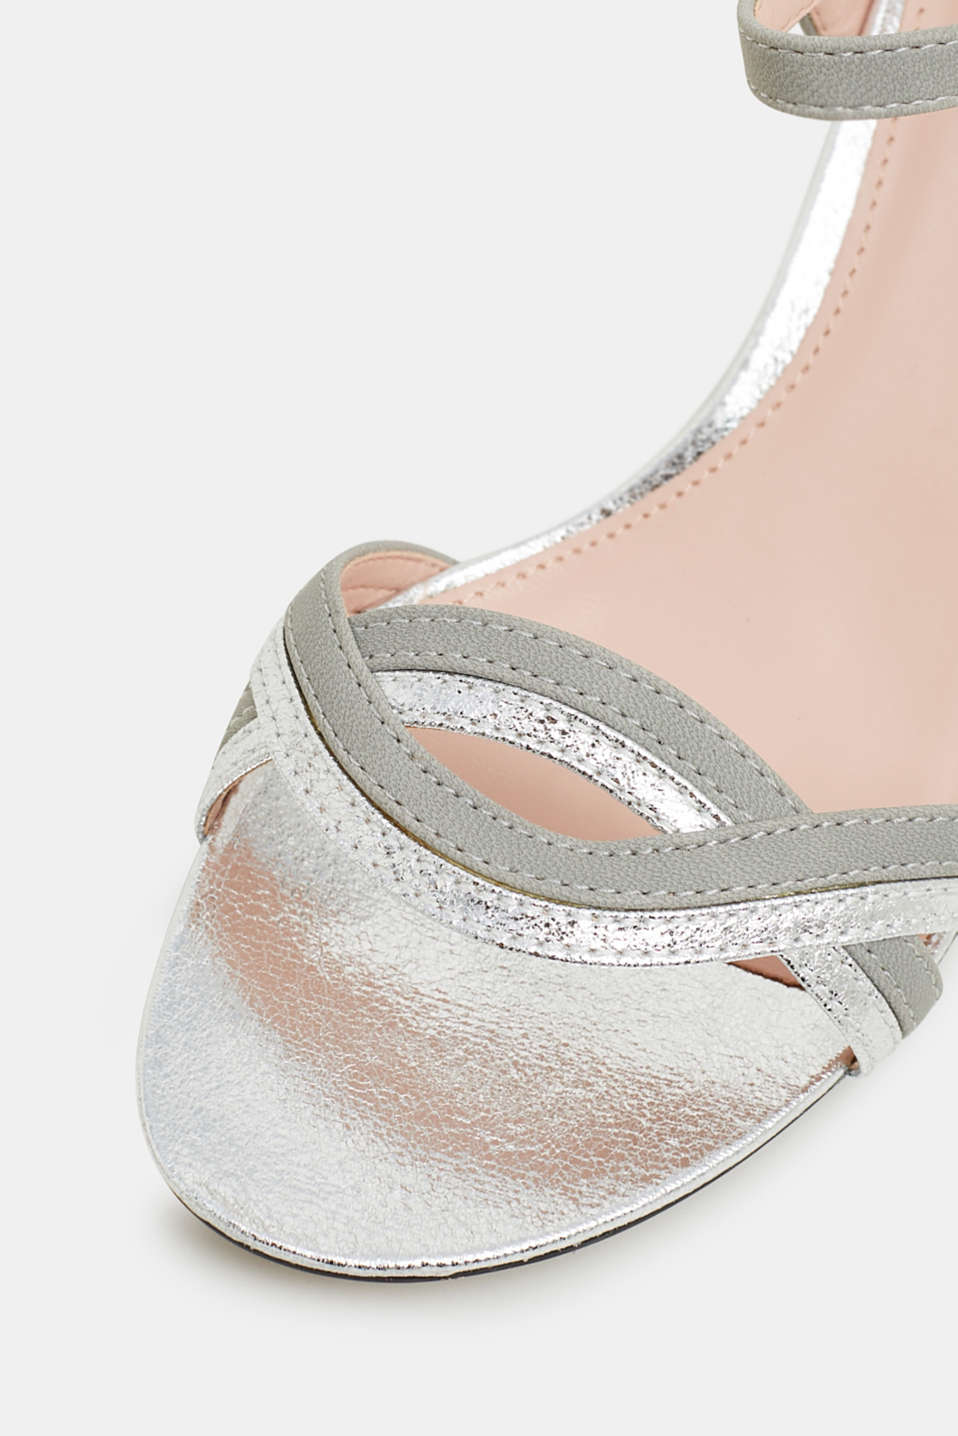 Faux leather sandals with metallic accents, SILVER, detail image number 4